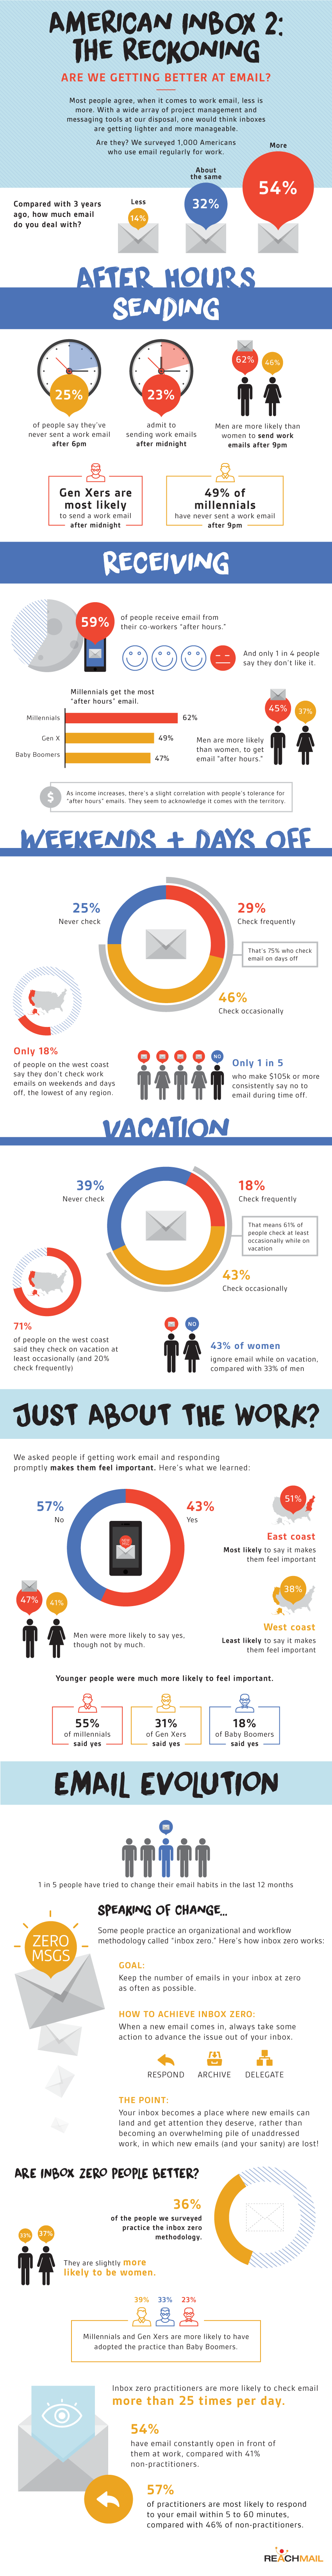 75% of Americans admit to checking their work email outside the office according to new data.